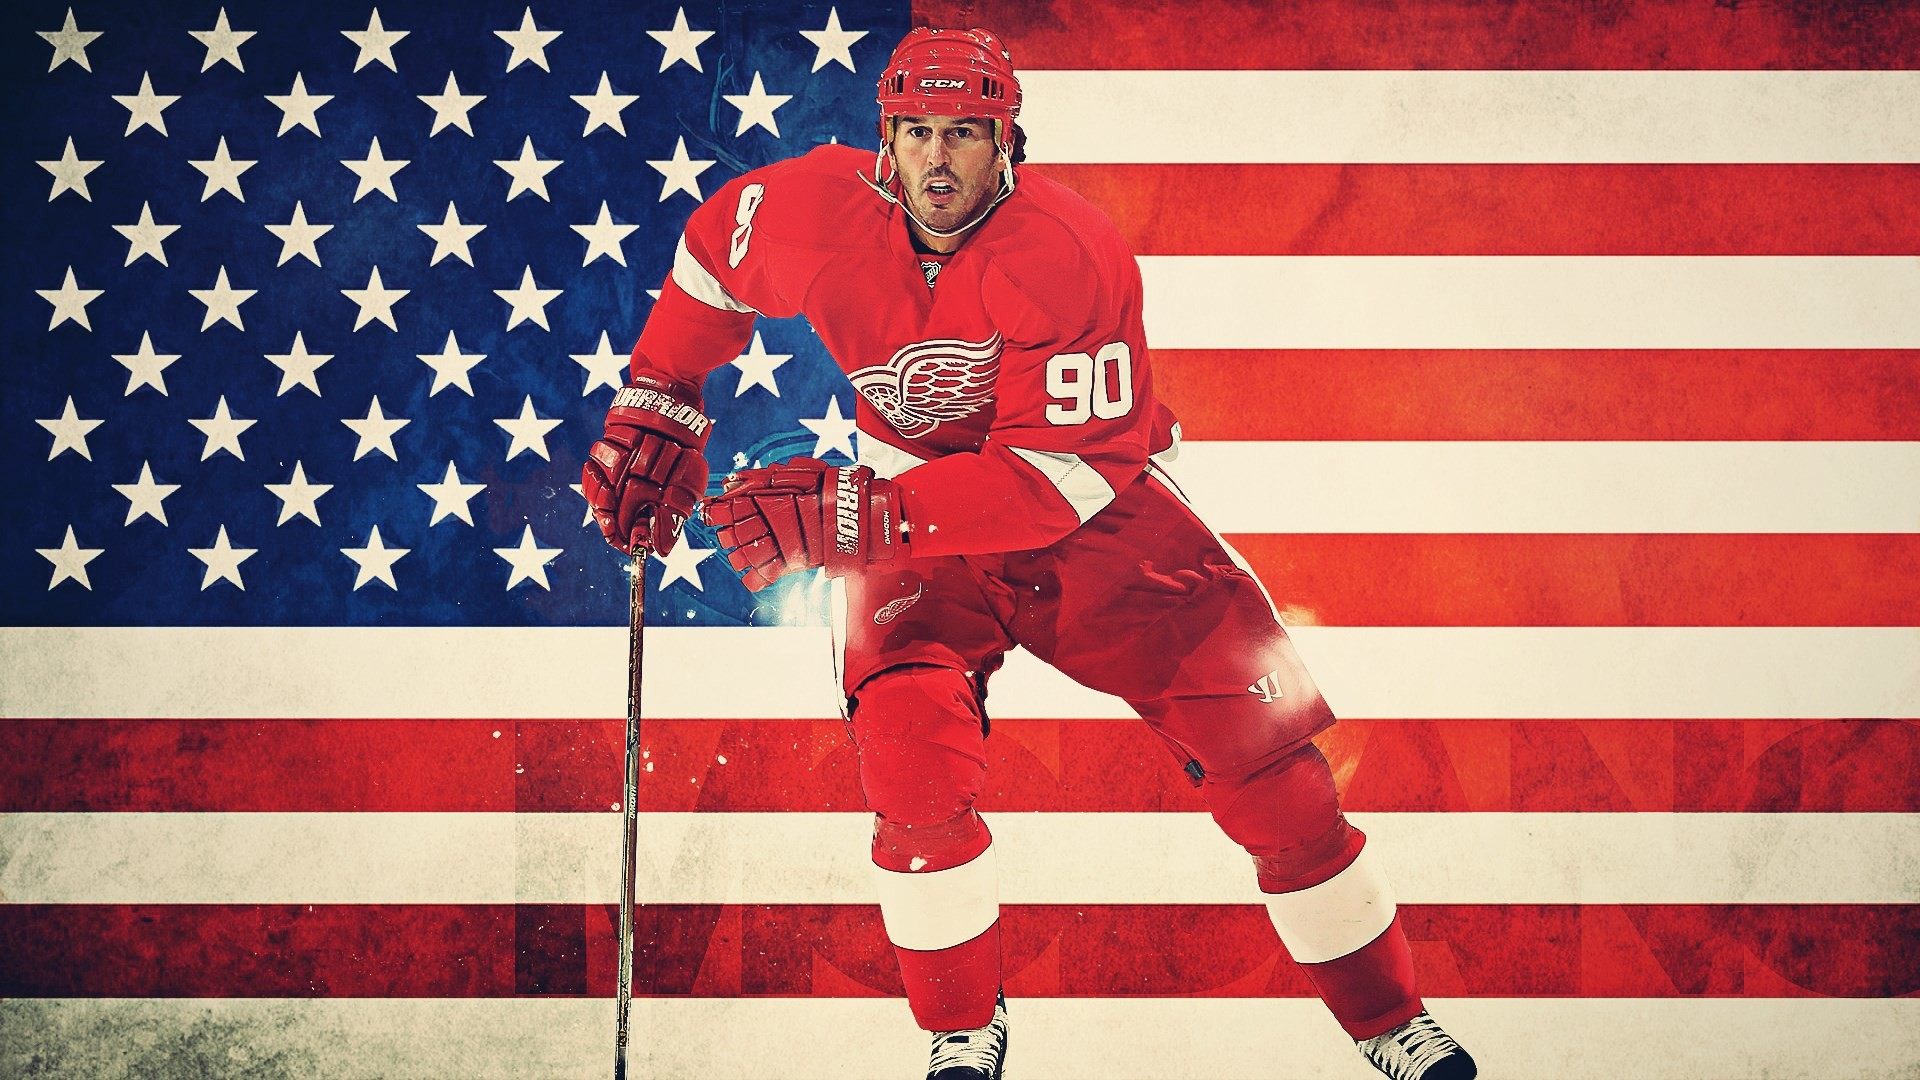 1920x1080 widescreen hd winter detroit red wings, Ashley London 2016-03-02